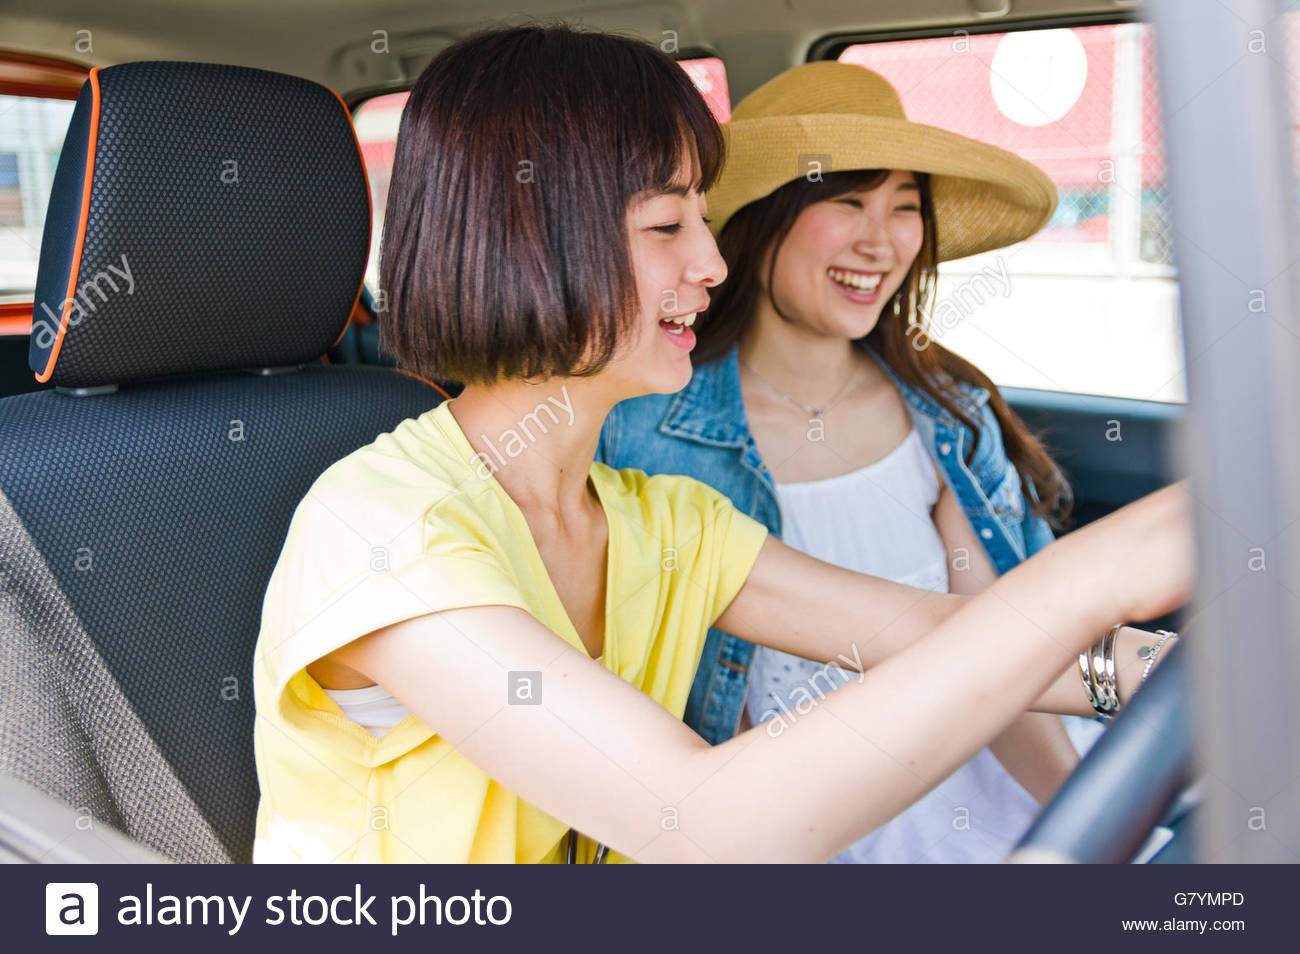 Woman driver setting the car navigation system - Stock Image